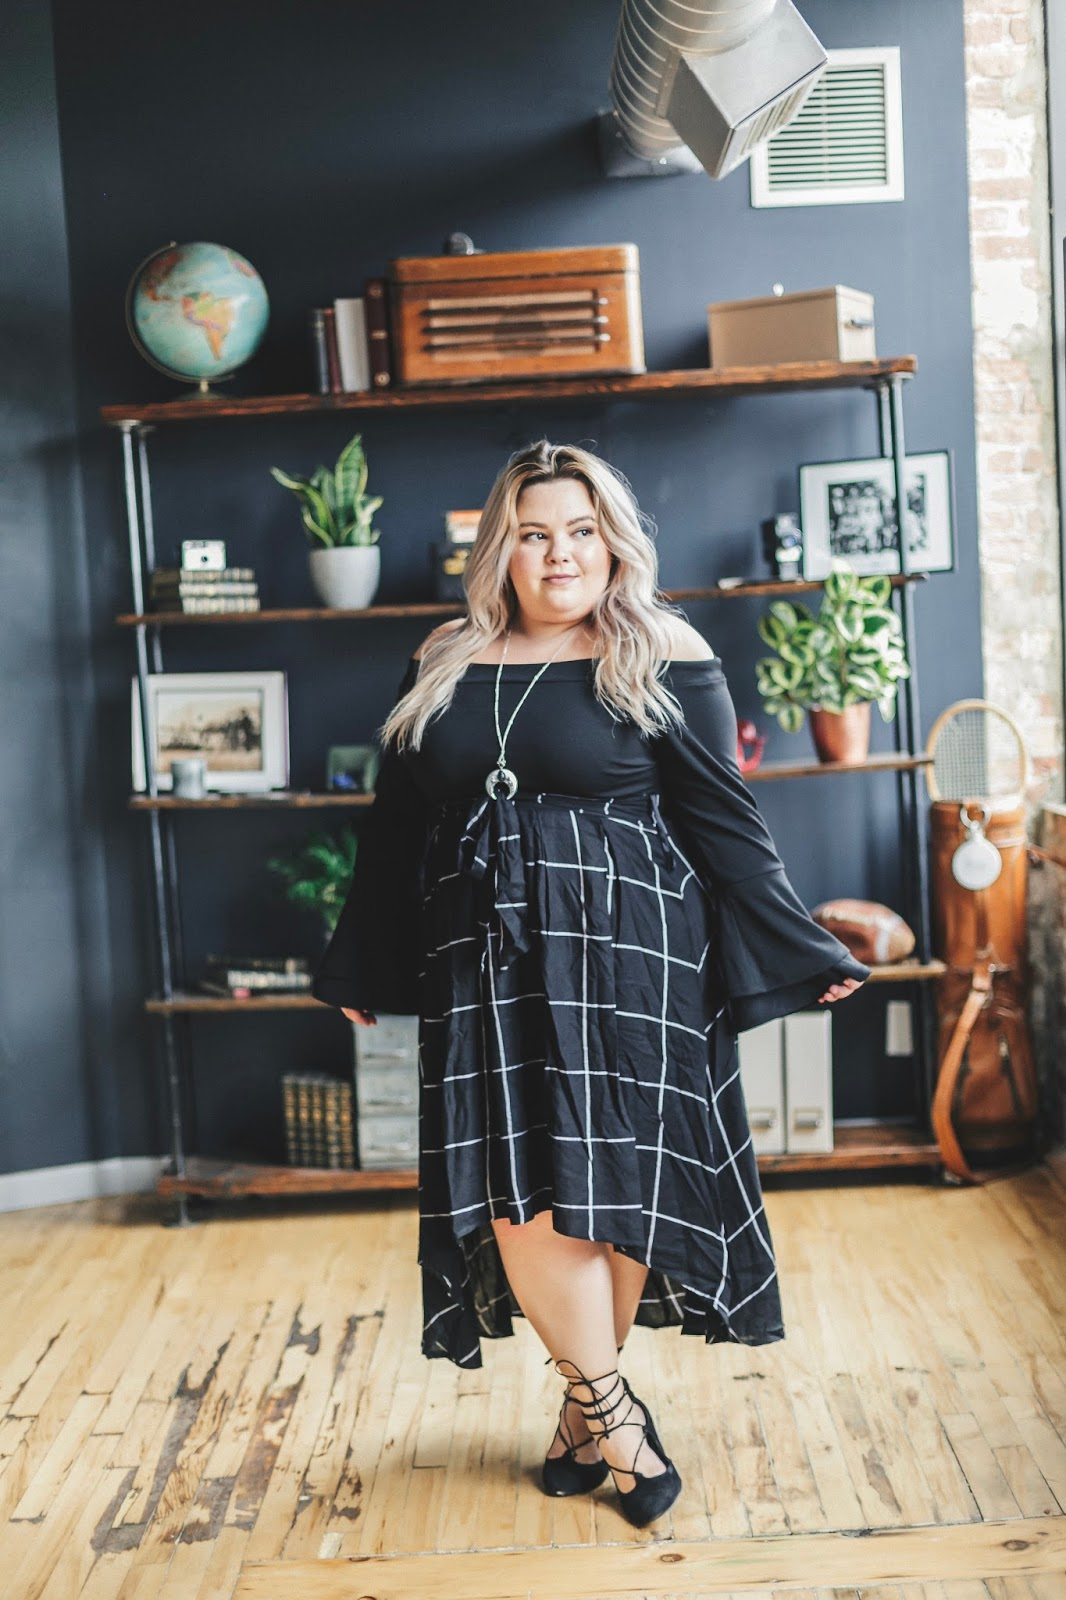 natalie craig, natalie in the city, plus size fashion blogger, Chicago fashion blogger, affordable plus size clothing, fashion to figure, plus size hi-lo skirts, fall plus size fashion, curves and confidence, body positive, midwest blogger